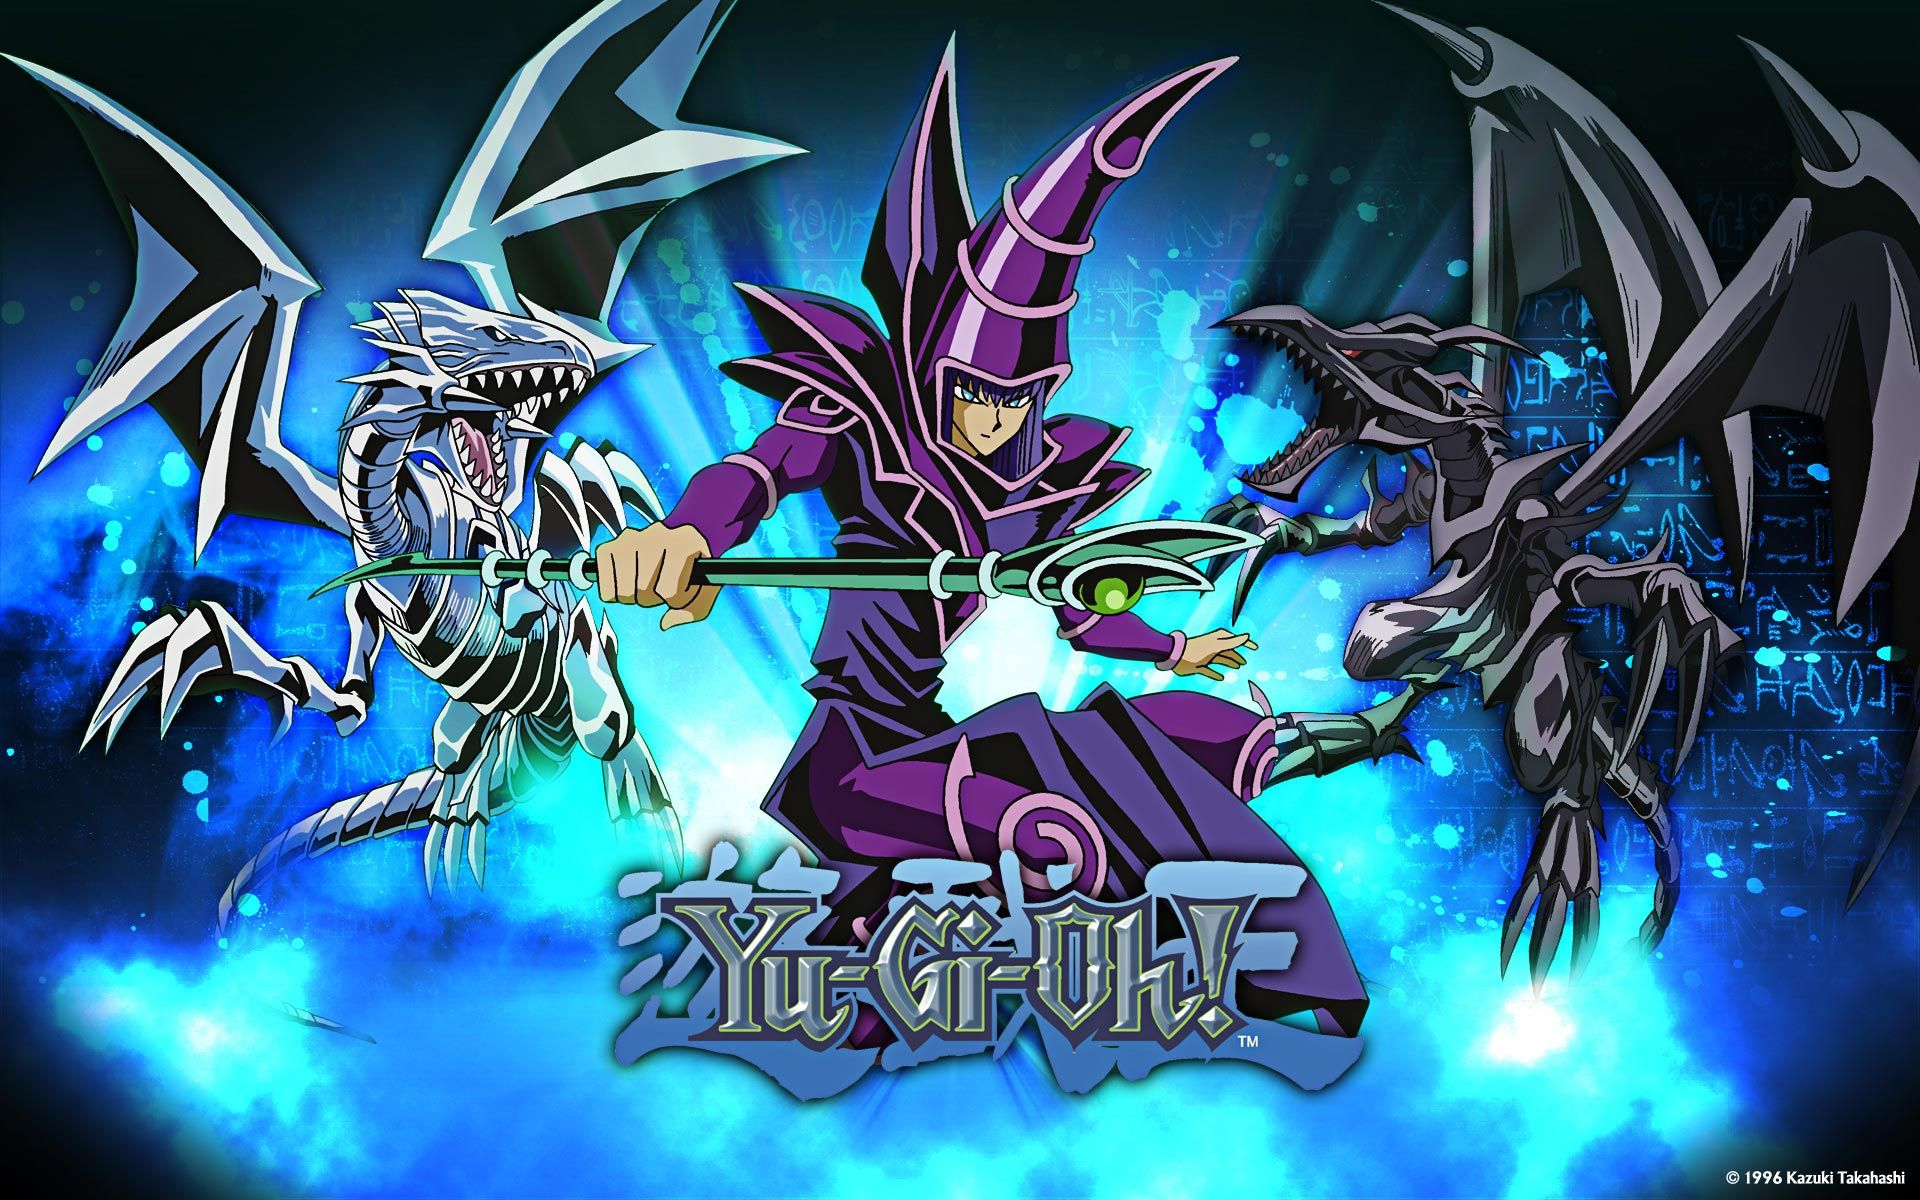 Yugioh Wallpapers Anime wallpaper Yugioh Hd anime wallpapers